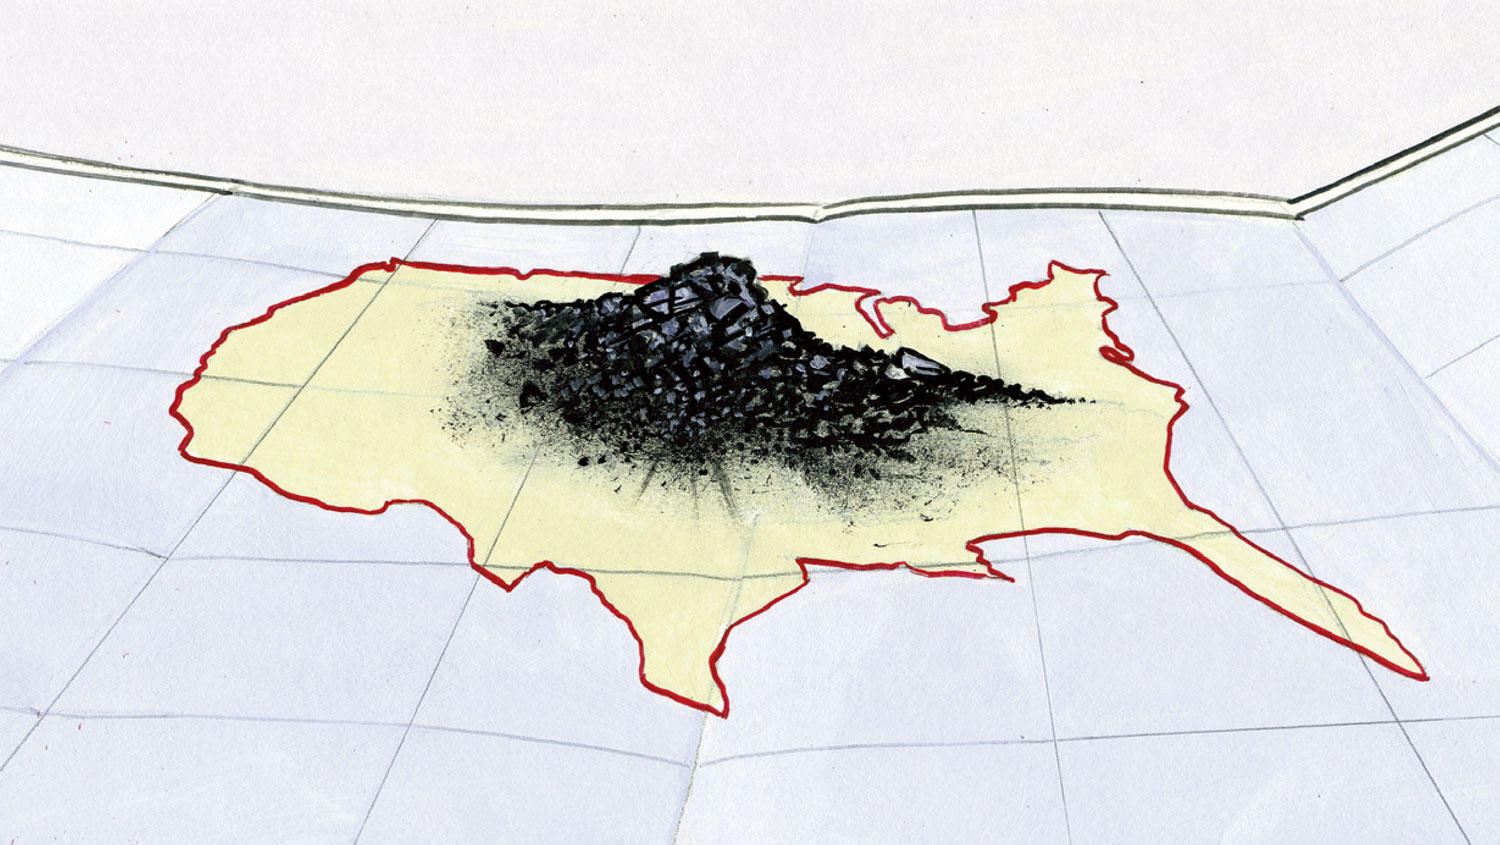 Illustration by Arthur E. Giron of a map of America with a pile of coal on top of it